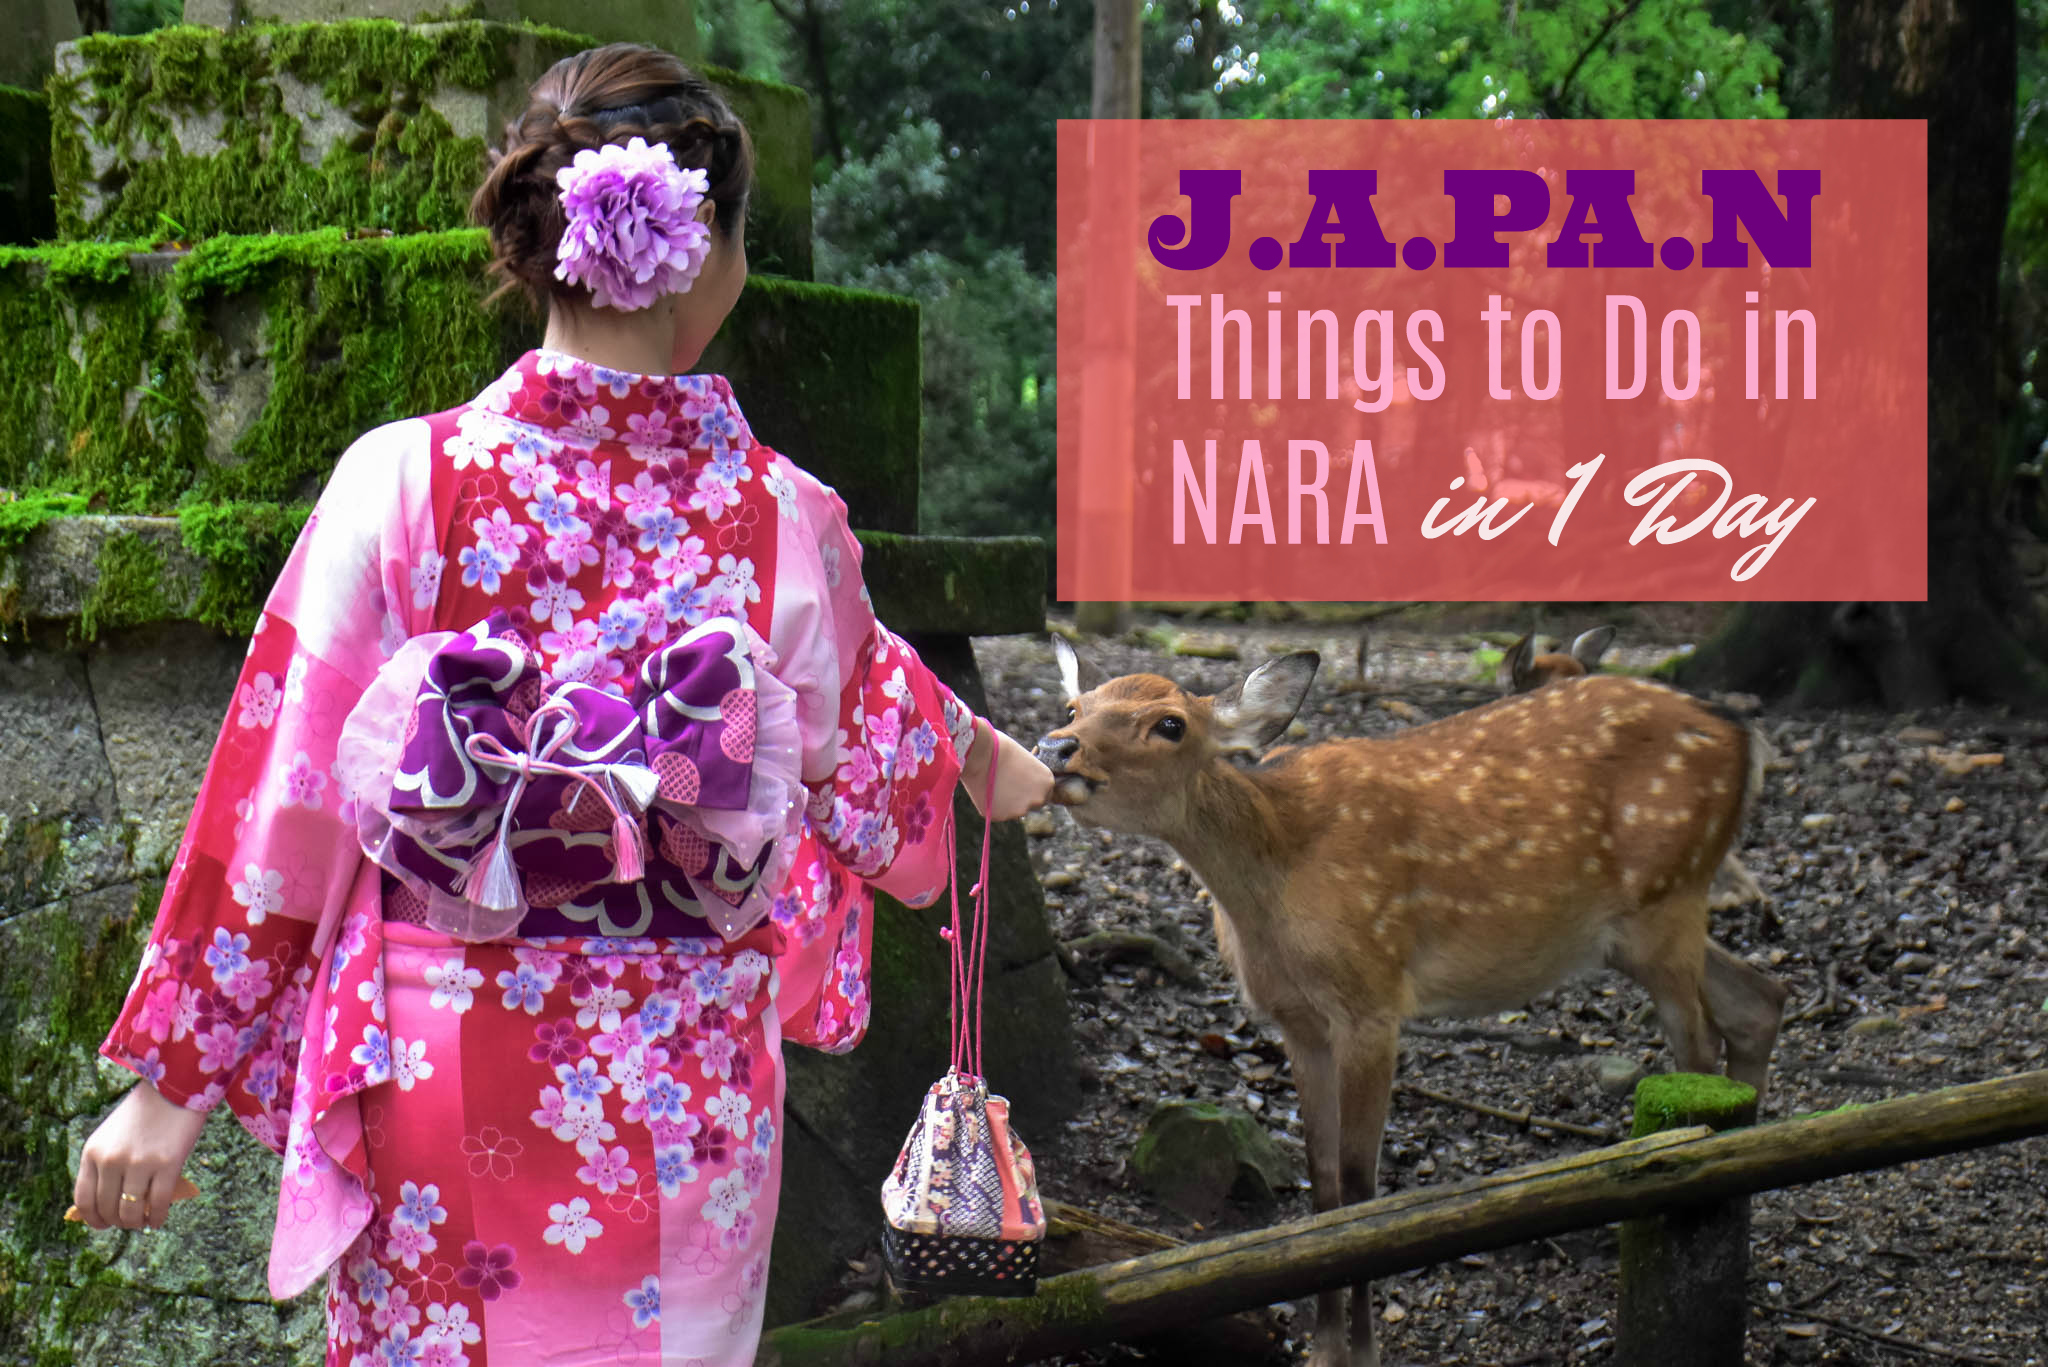 What to Do in Nara in 1 Day and How to Get There